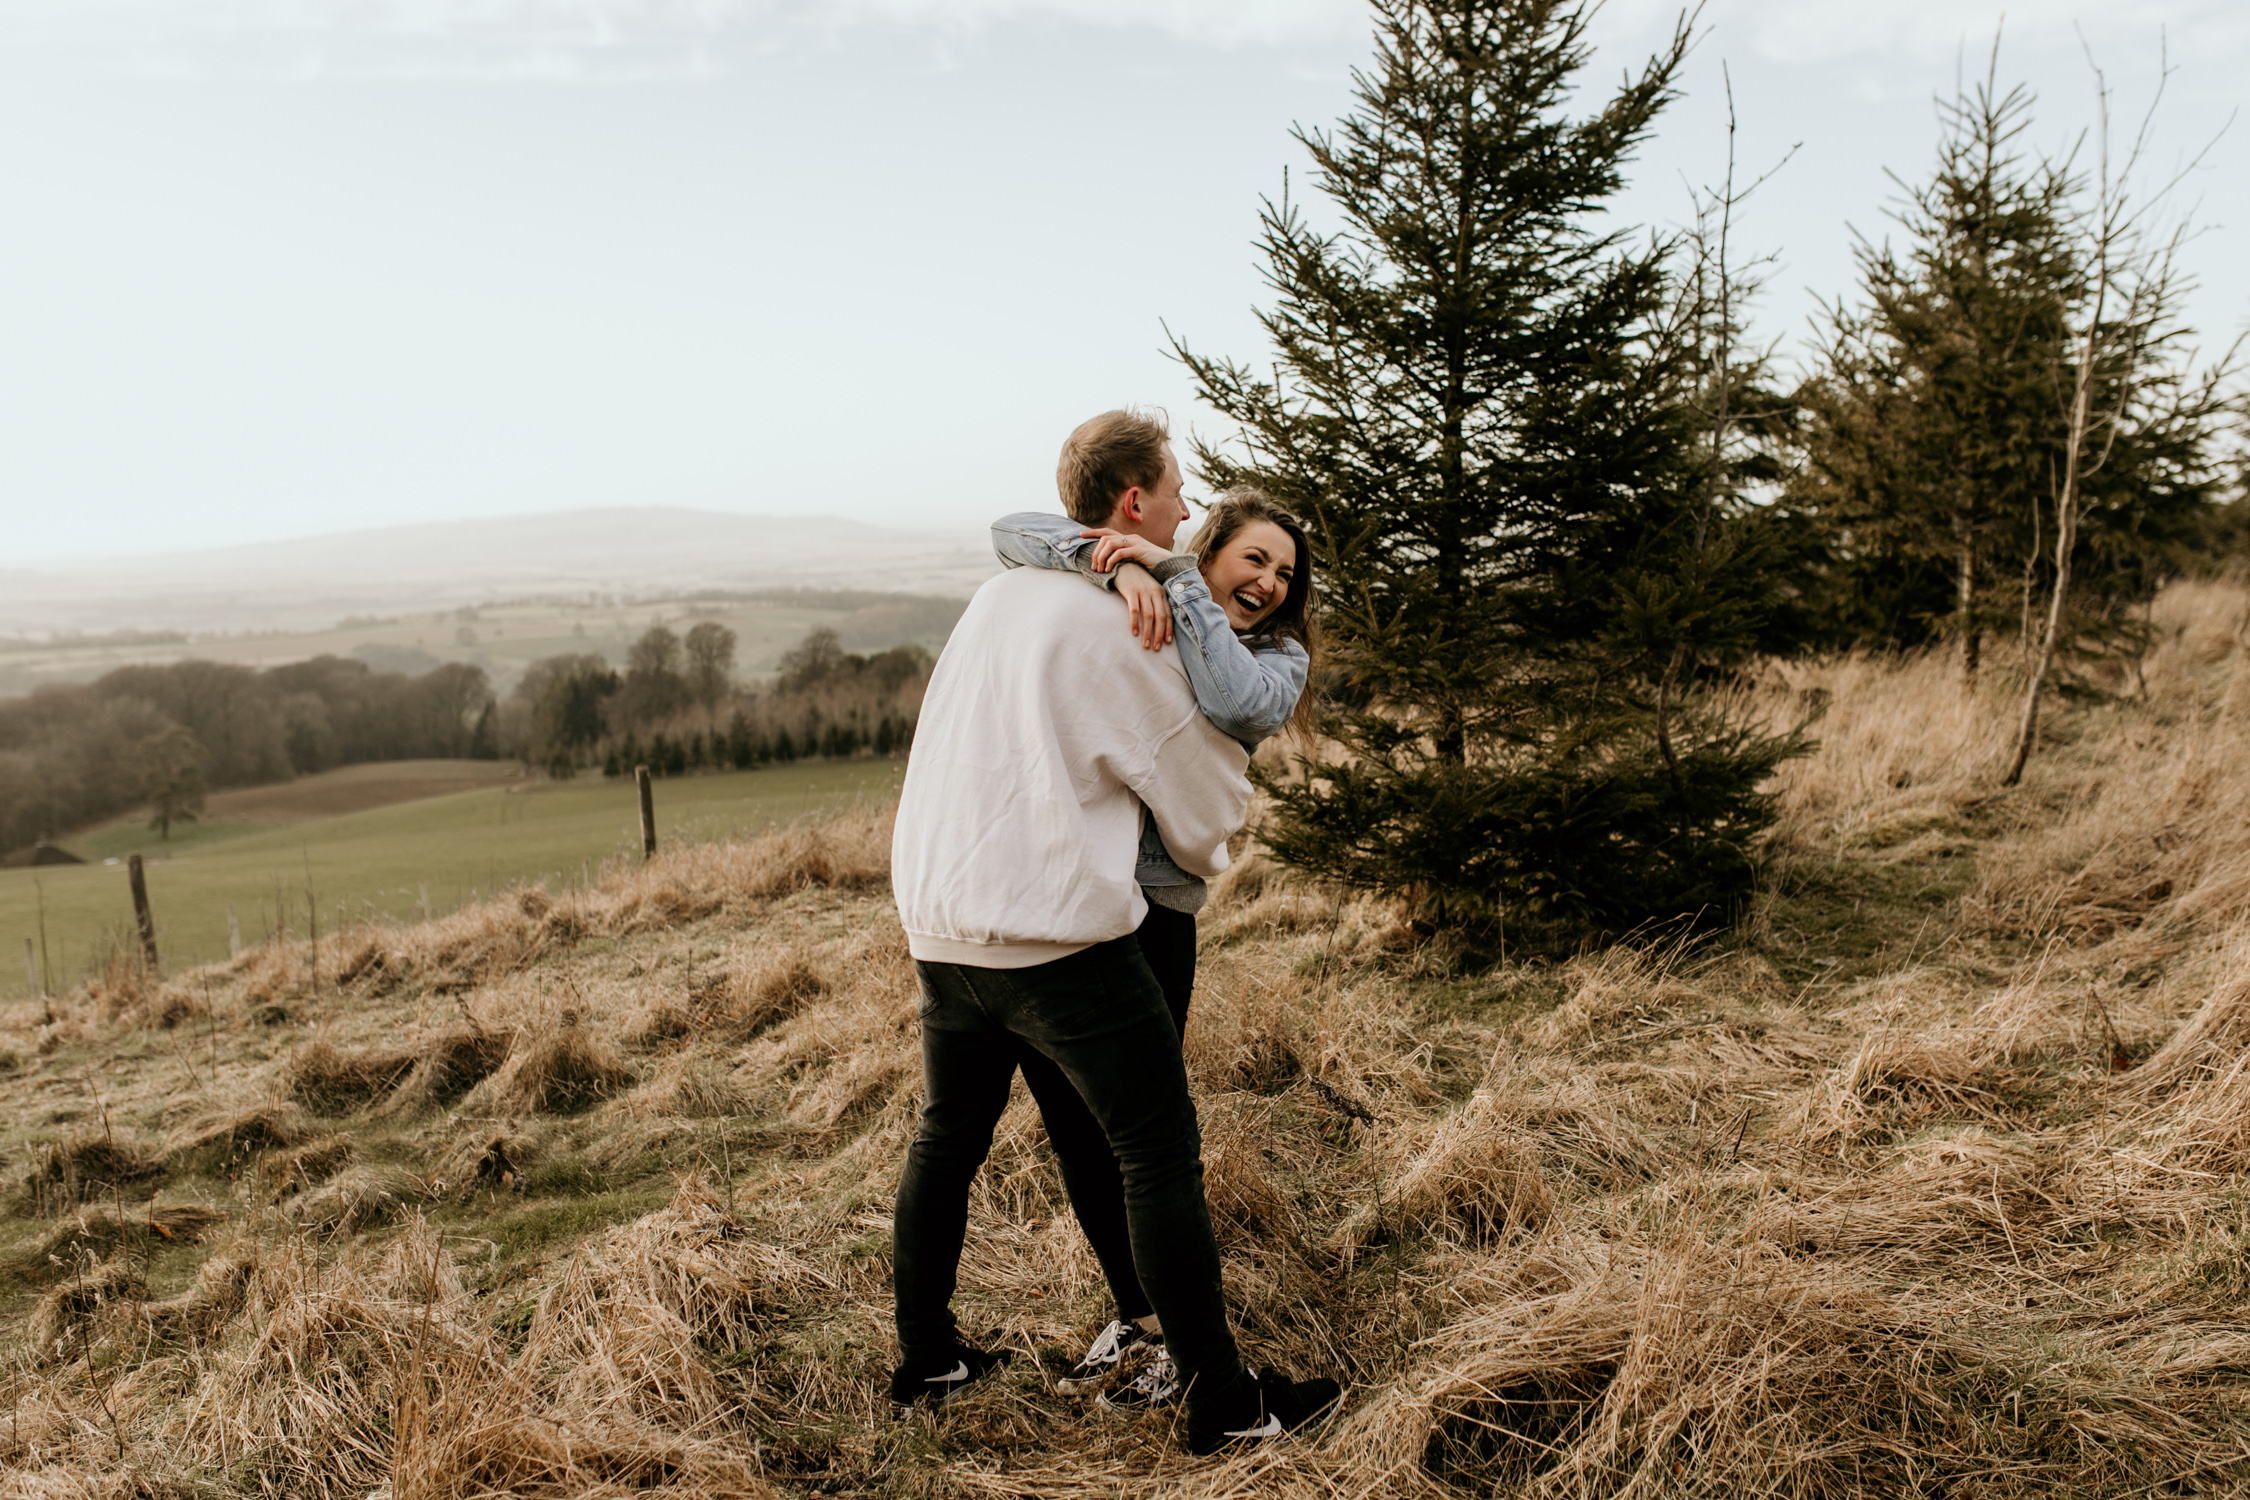 couple having fun during their engagement shoot in the Cotswolds countryside